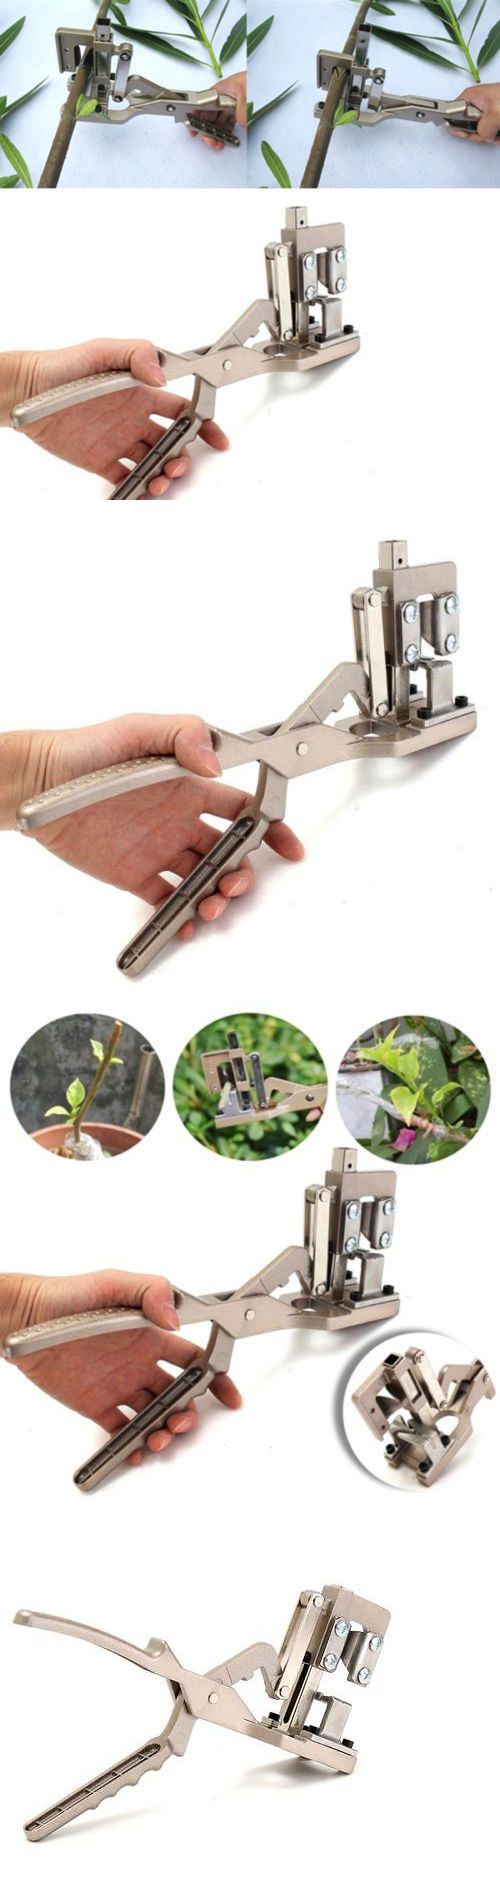 Pruning Shears and Snips 139871: Profession V-Cut Grafting Tools Clean Cut Fruit Tree Garden Grafting Tool New -> BUY IT NOW ONLY: $30.89 on eBay!